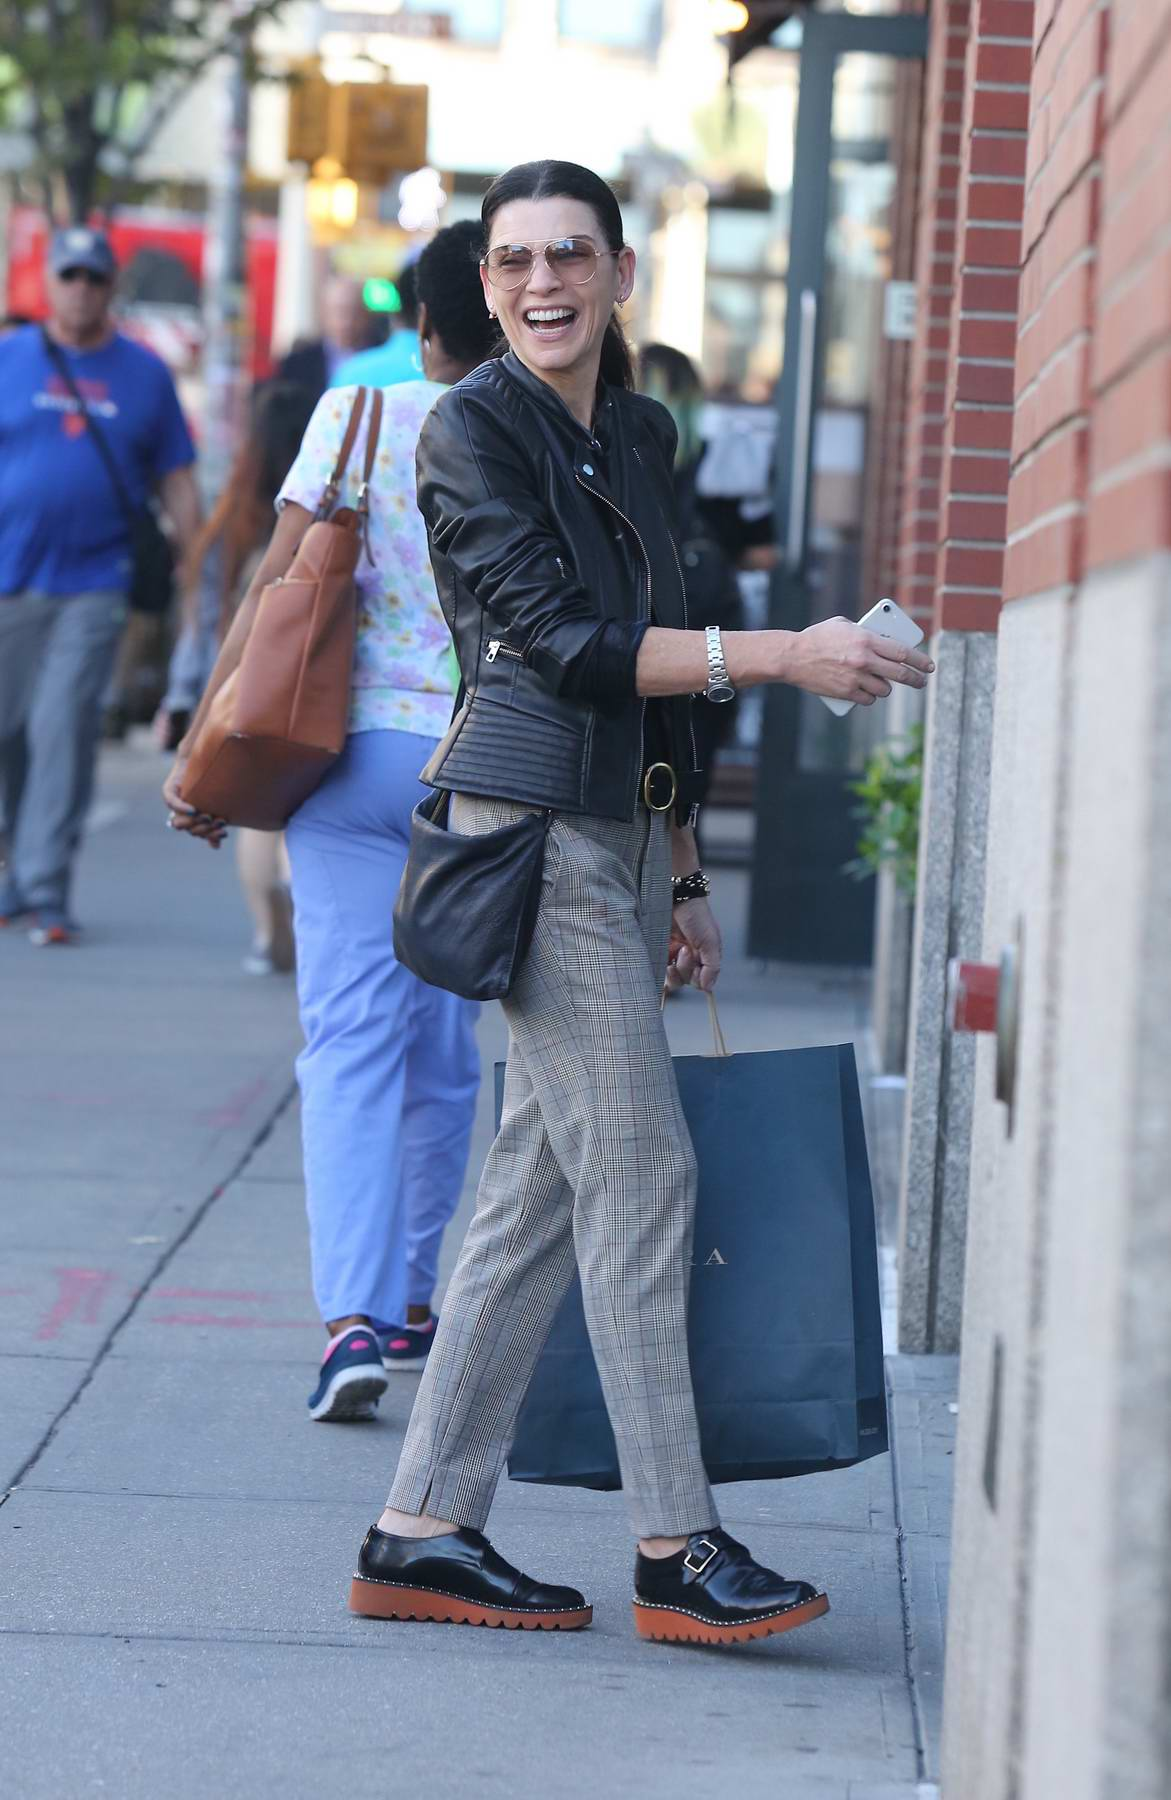 Julianna Margulies out for shopping in Soho, New York City